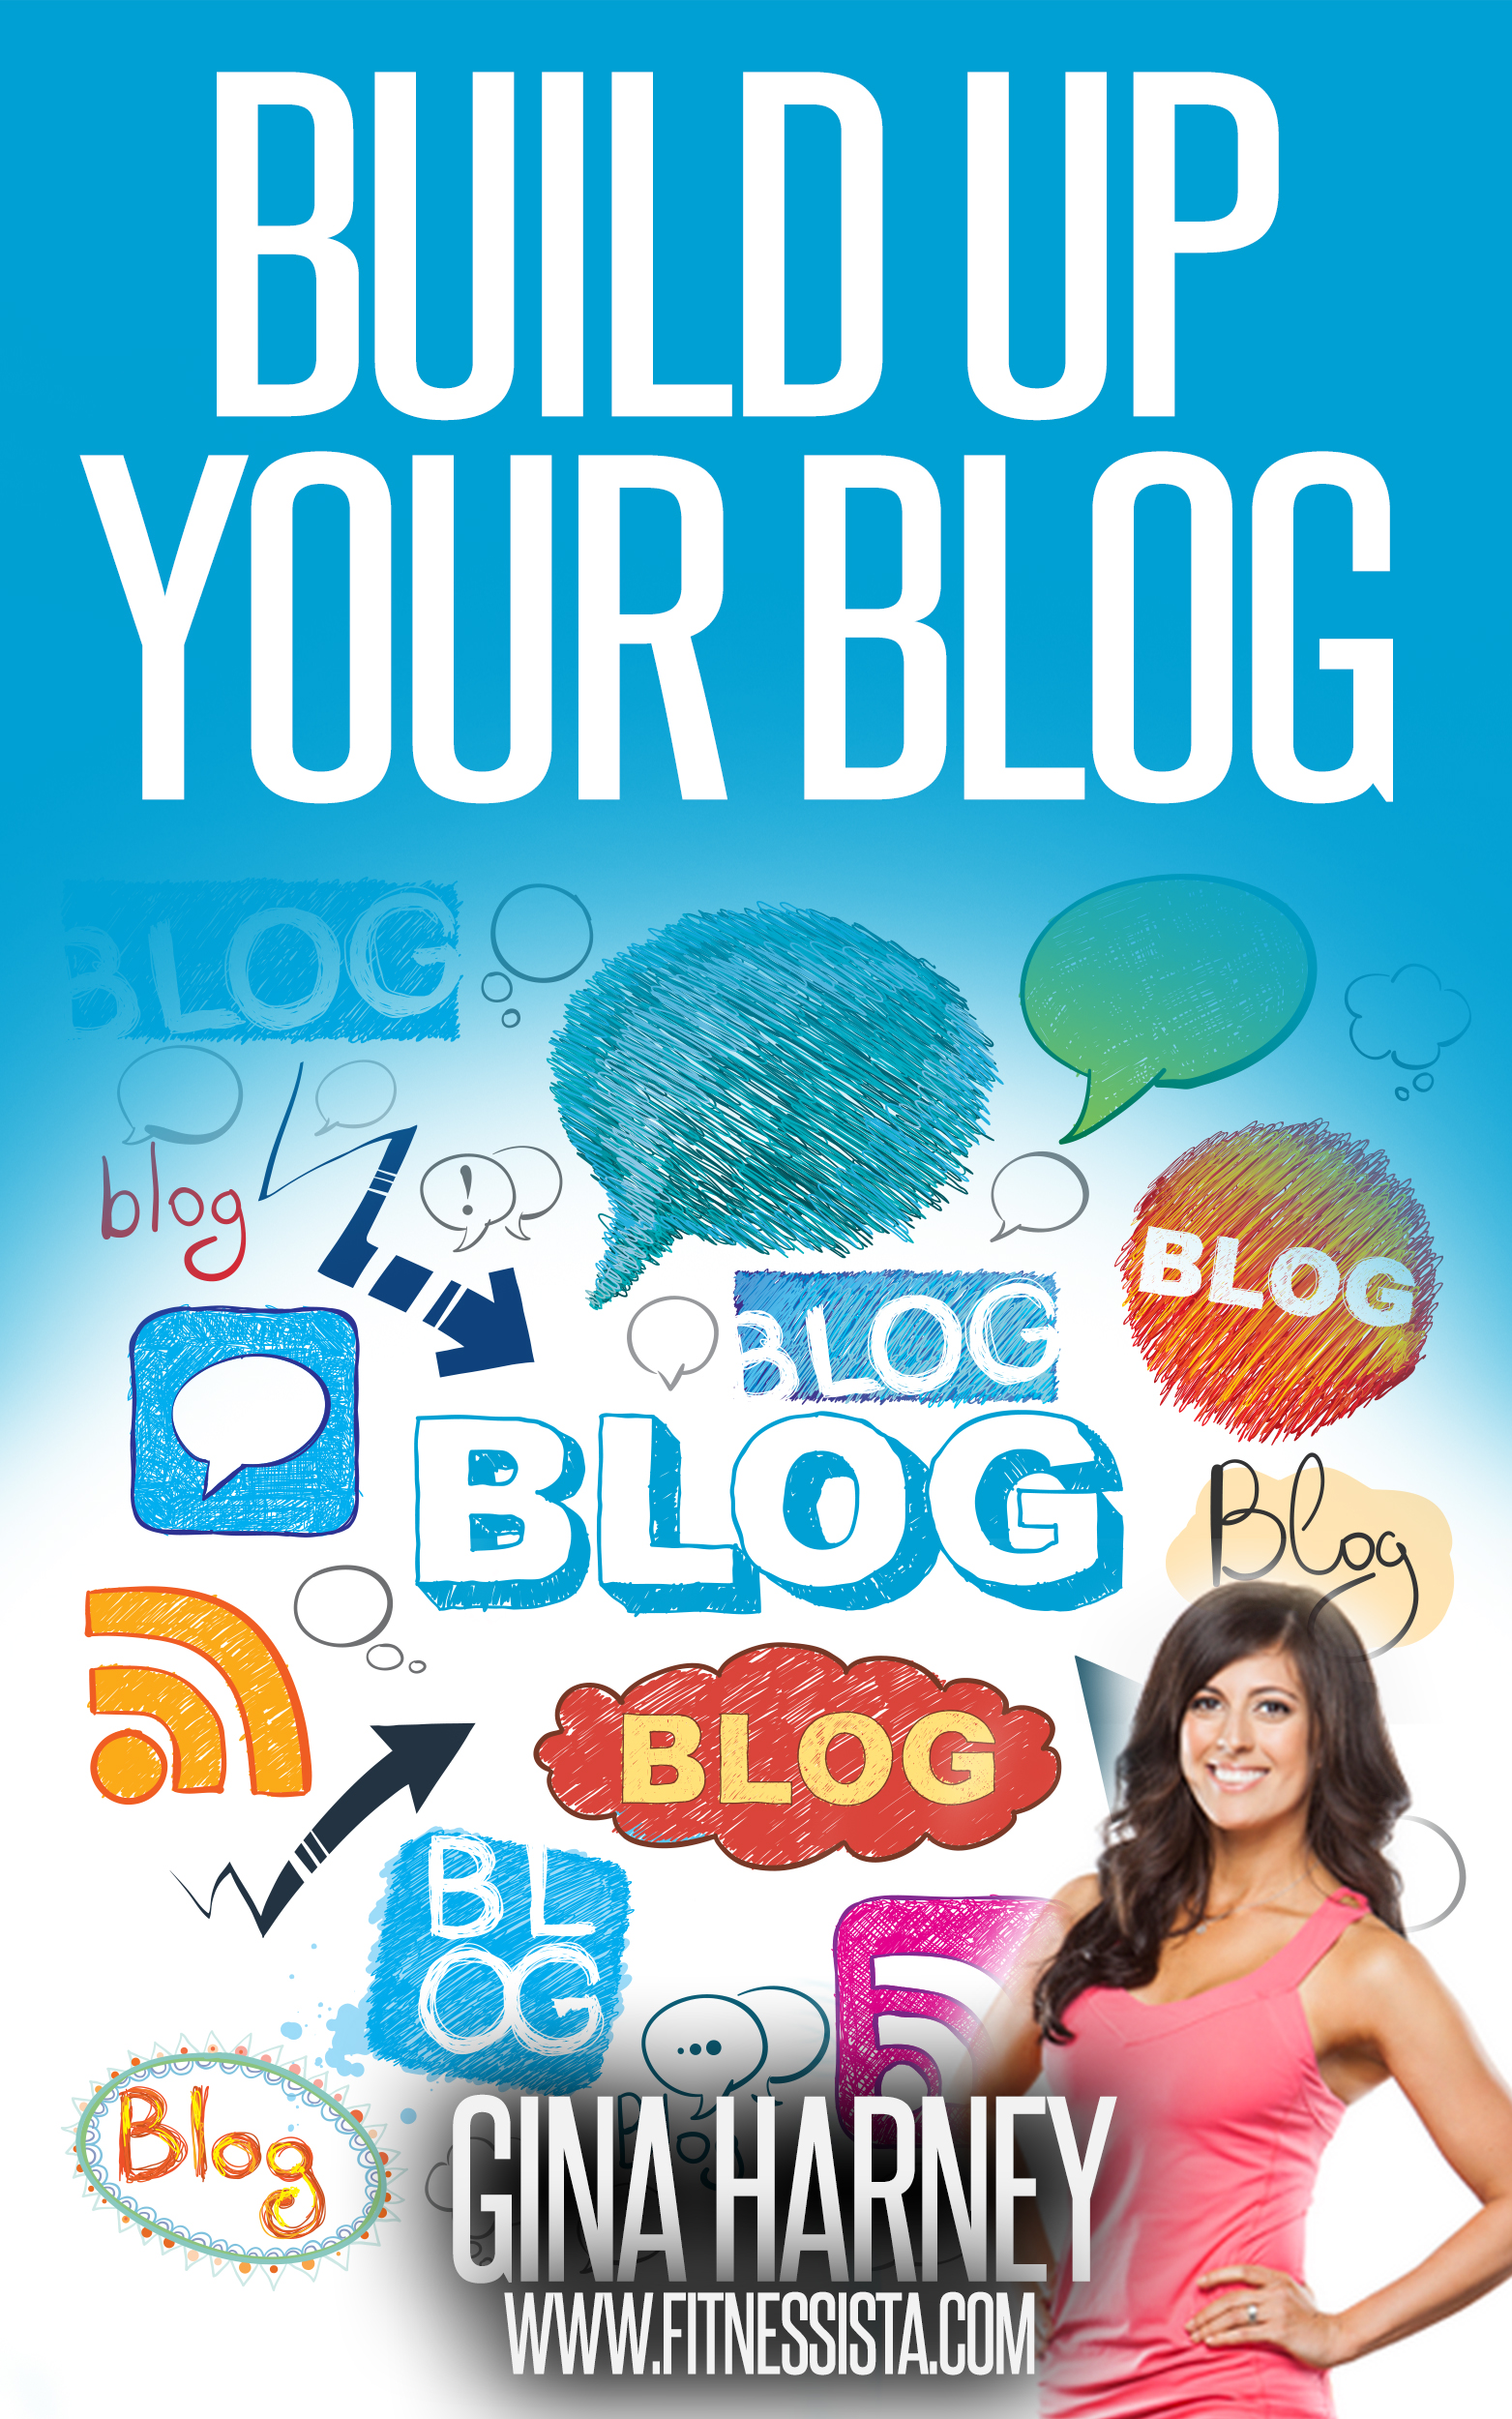 Build up your blog by fitnessista